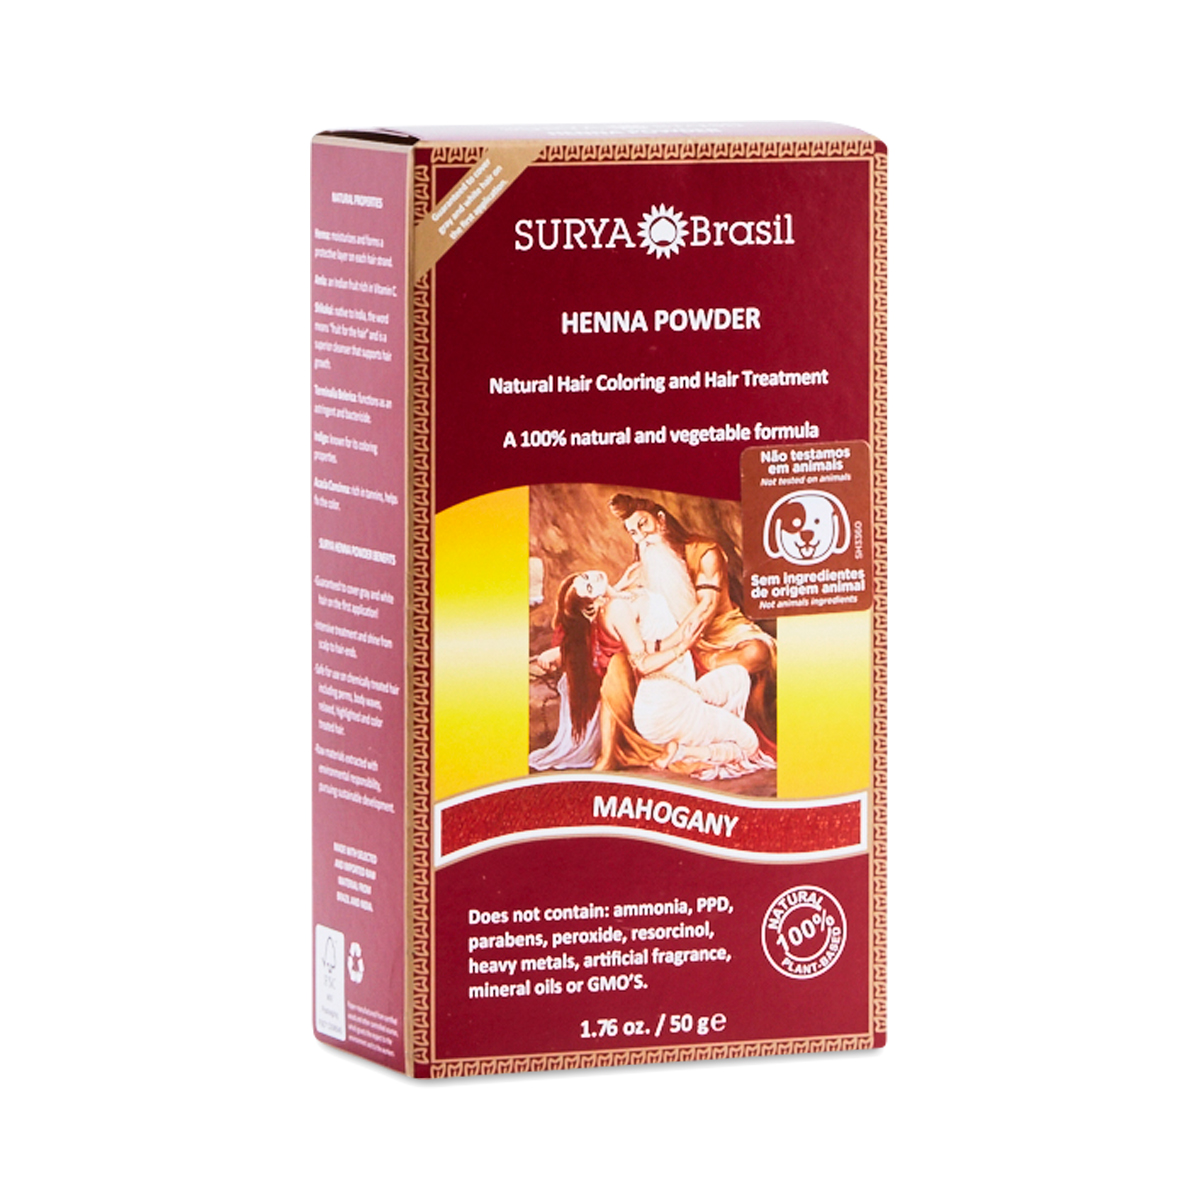 Mahogany Henna Hair Coloring Powder by Surya Brasil - Thrive Market